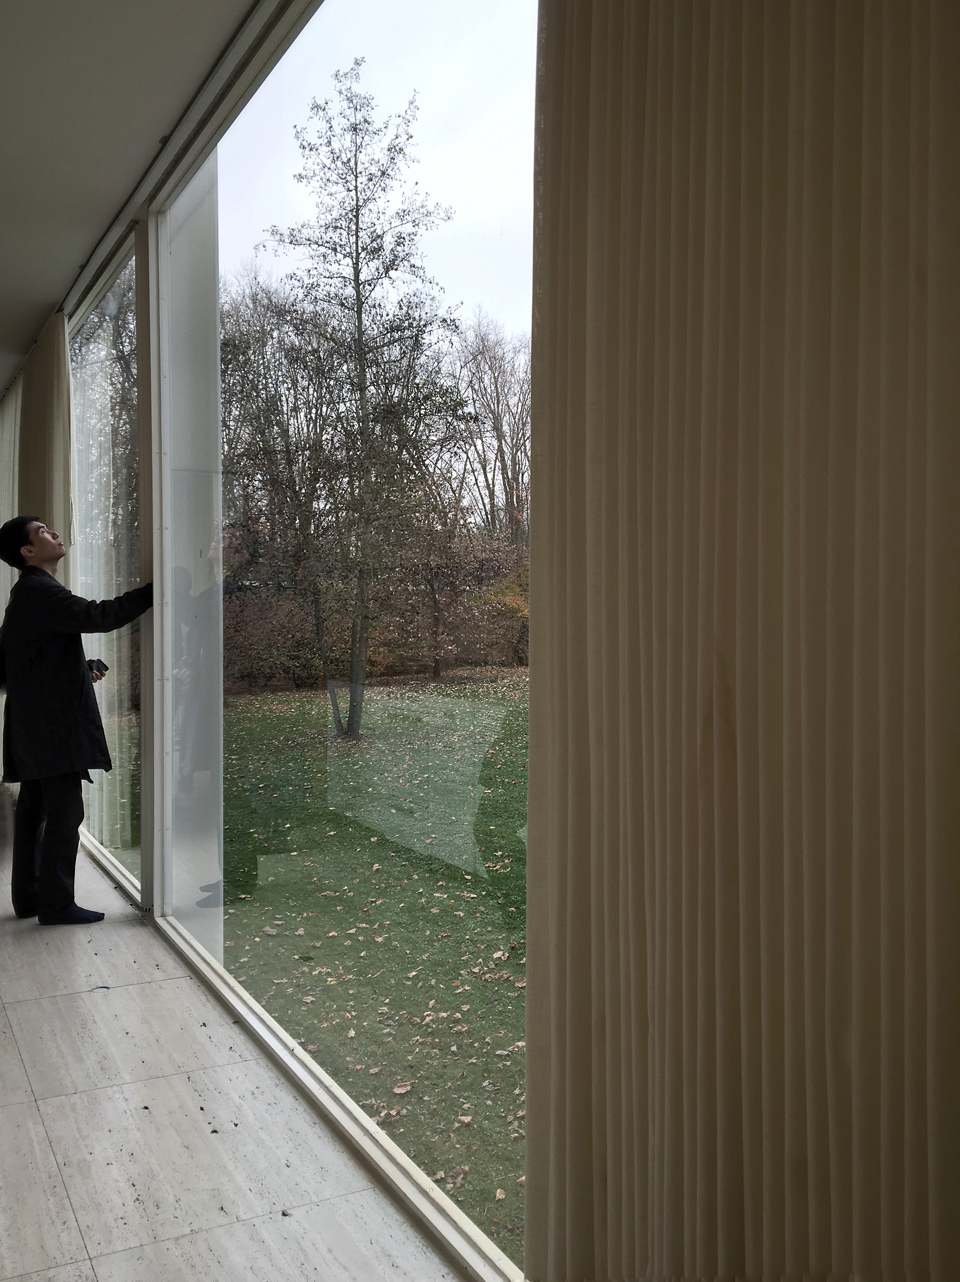 jason at the farnsworth house